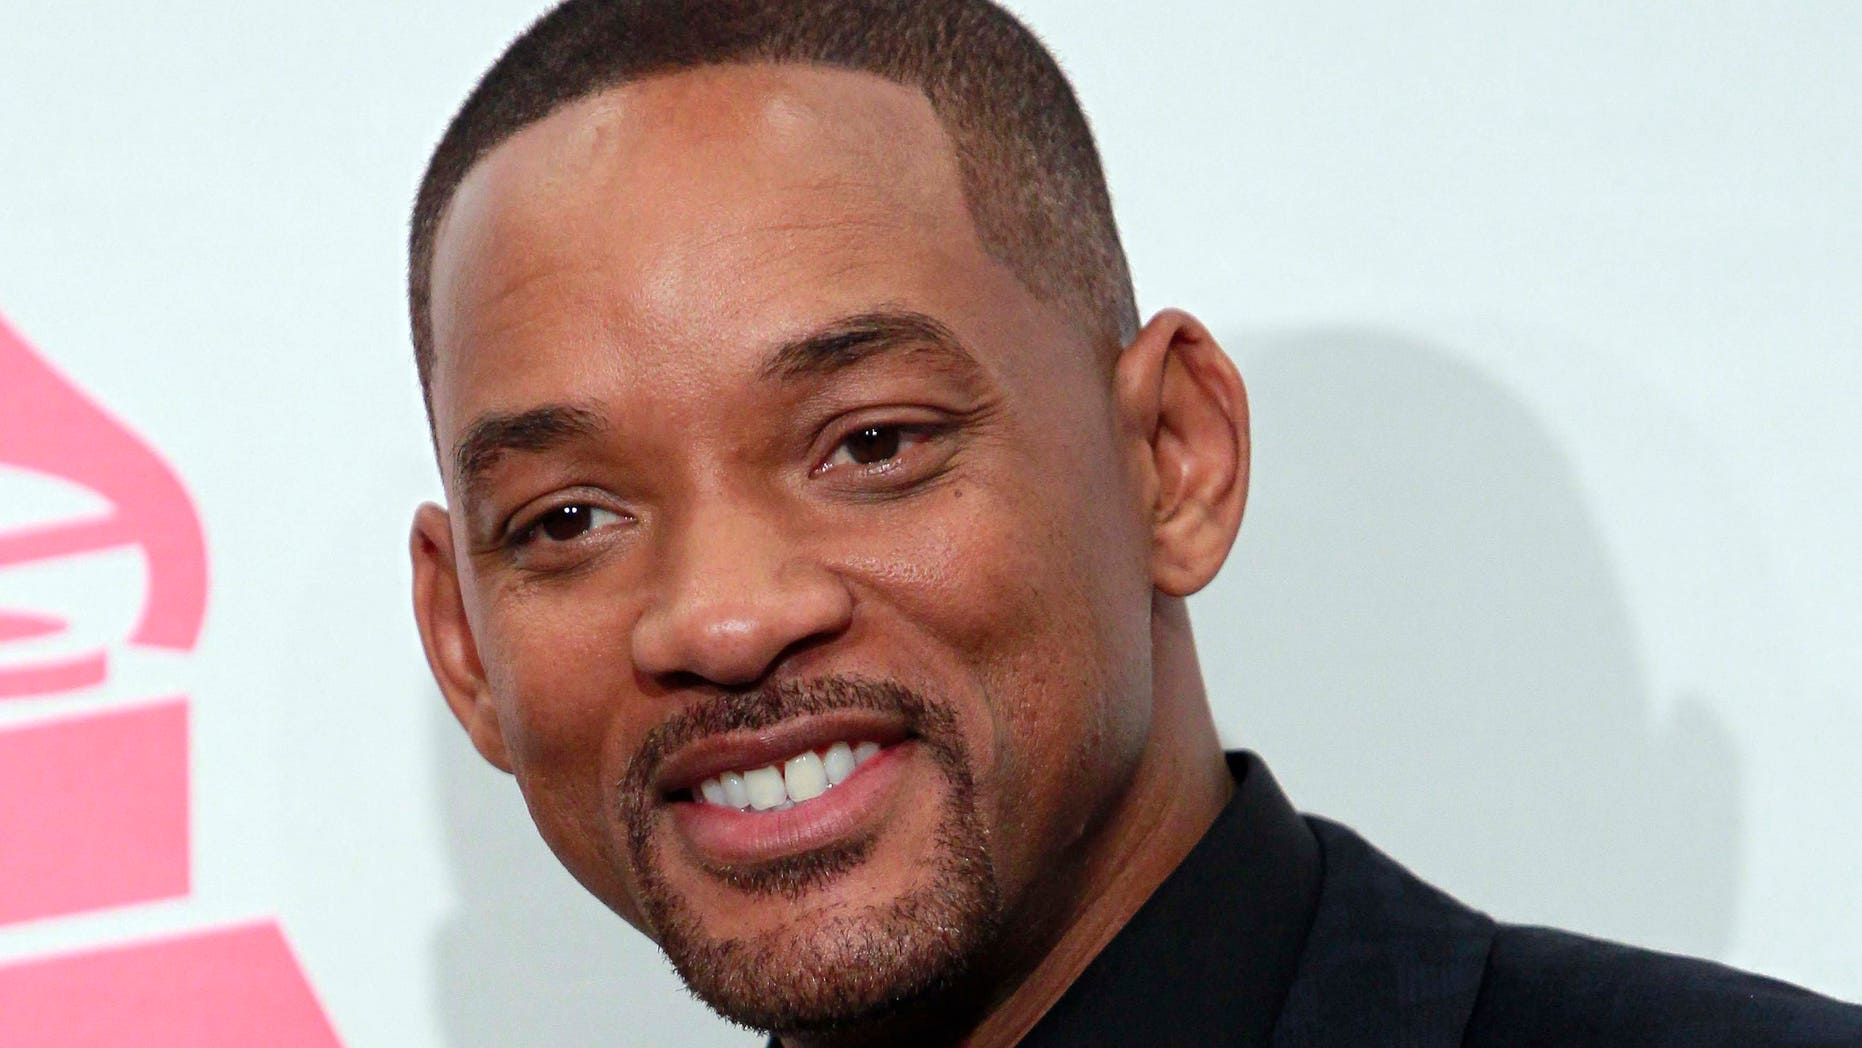 November 19, 2015.  Will Smith poses backstage at the 2015 Latin Grammy Awards in Las Vegas, Nevada.